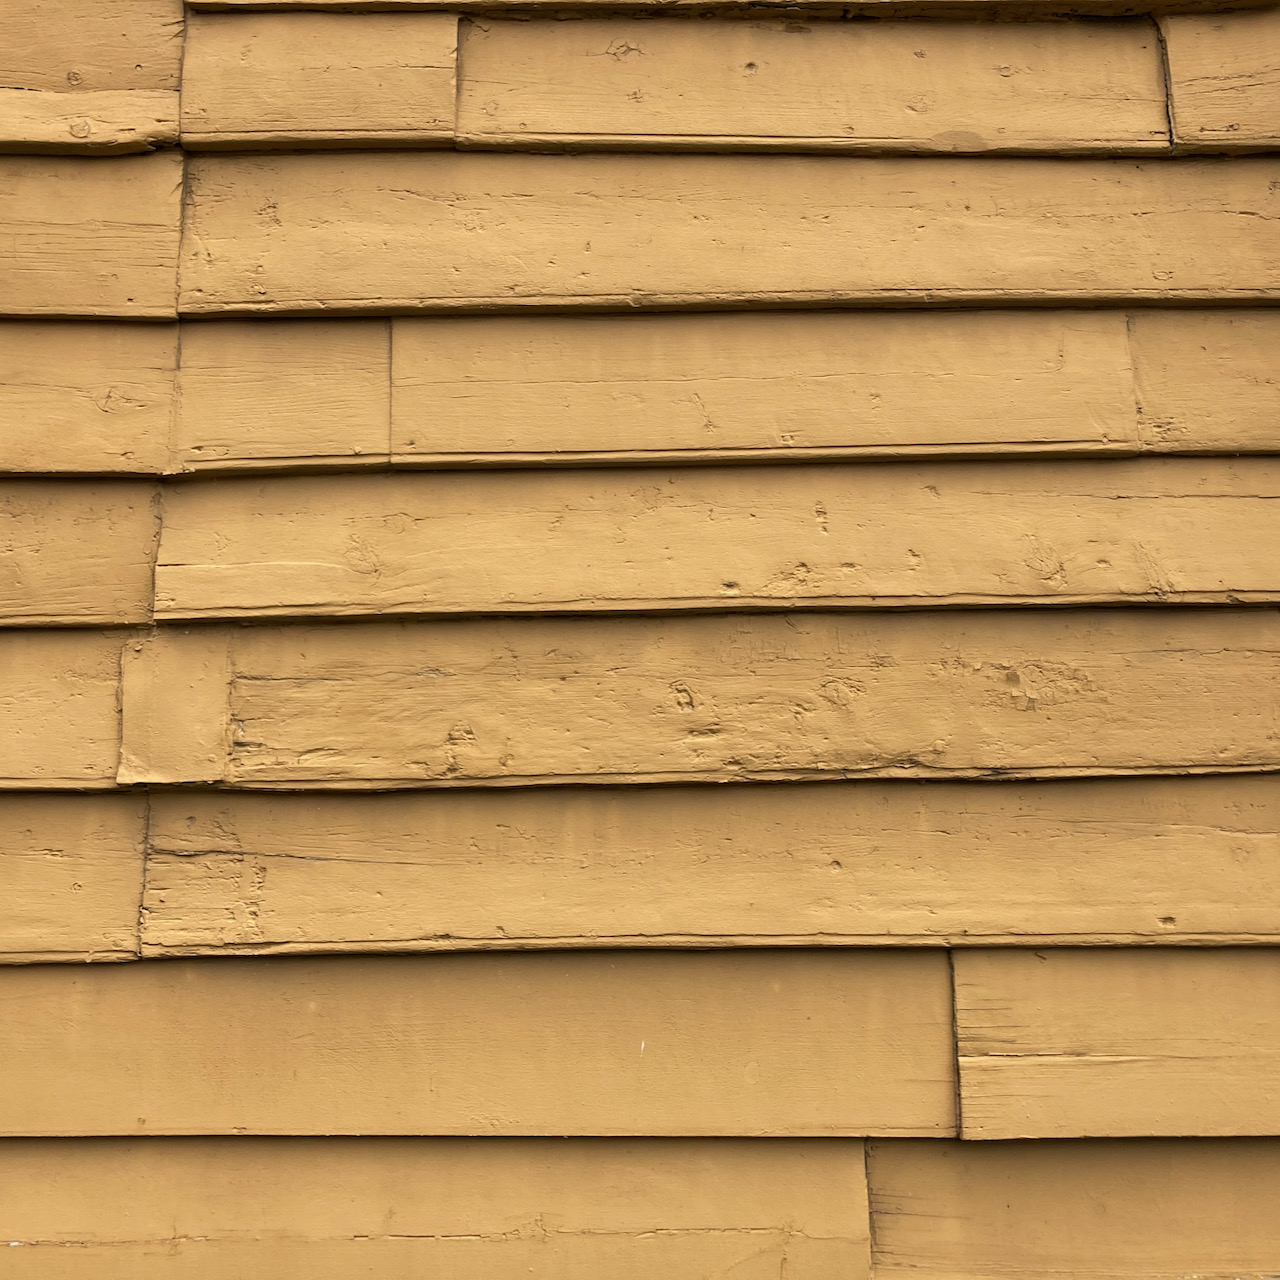 Clapboard siding, painted yellow.